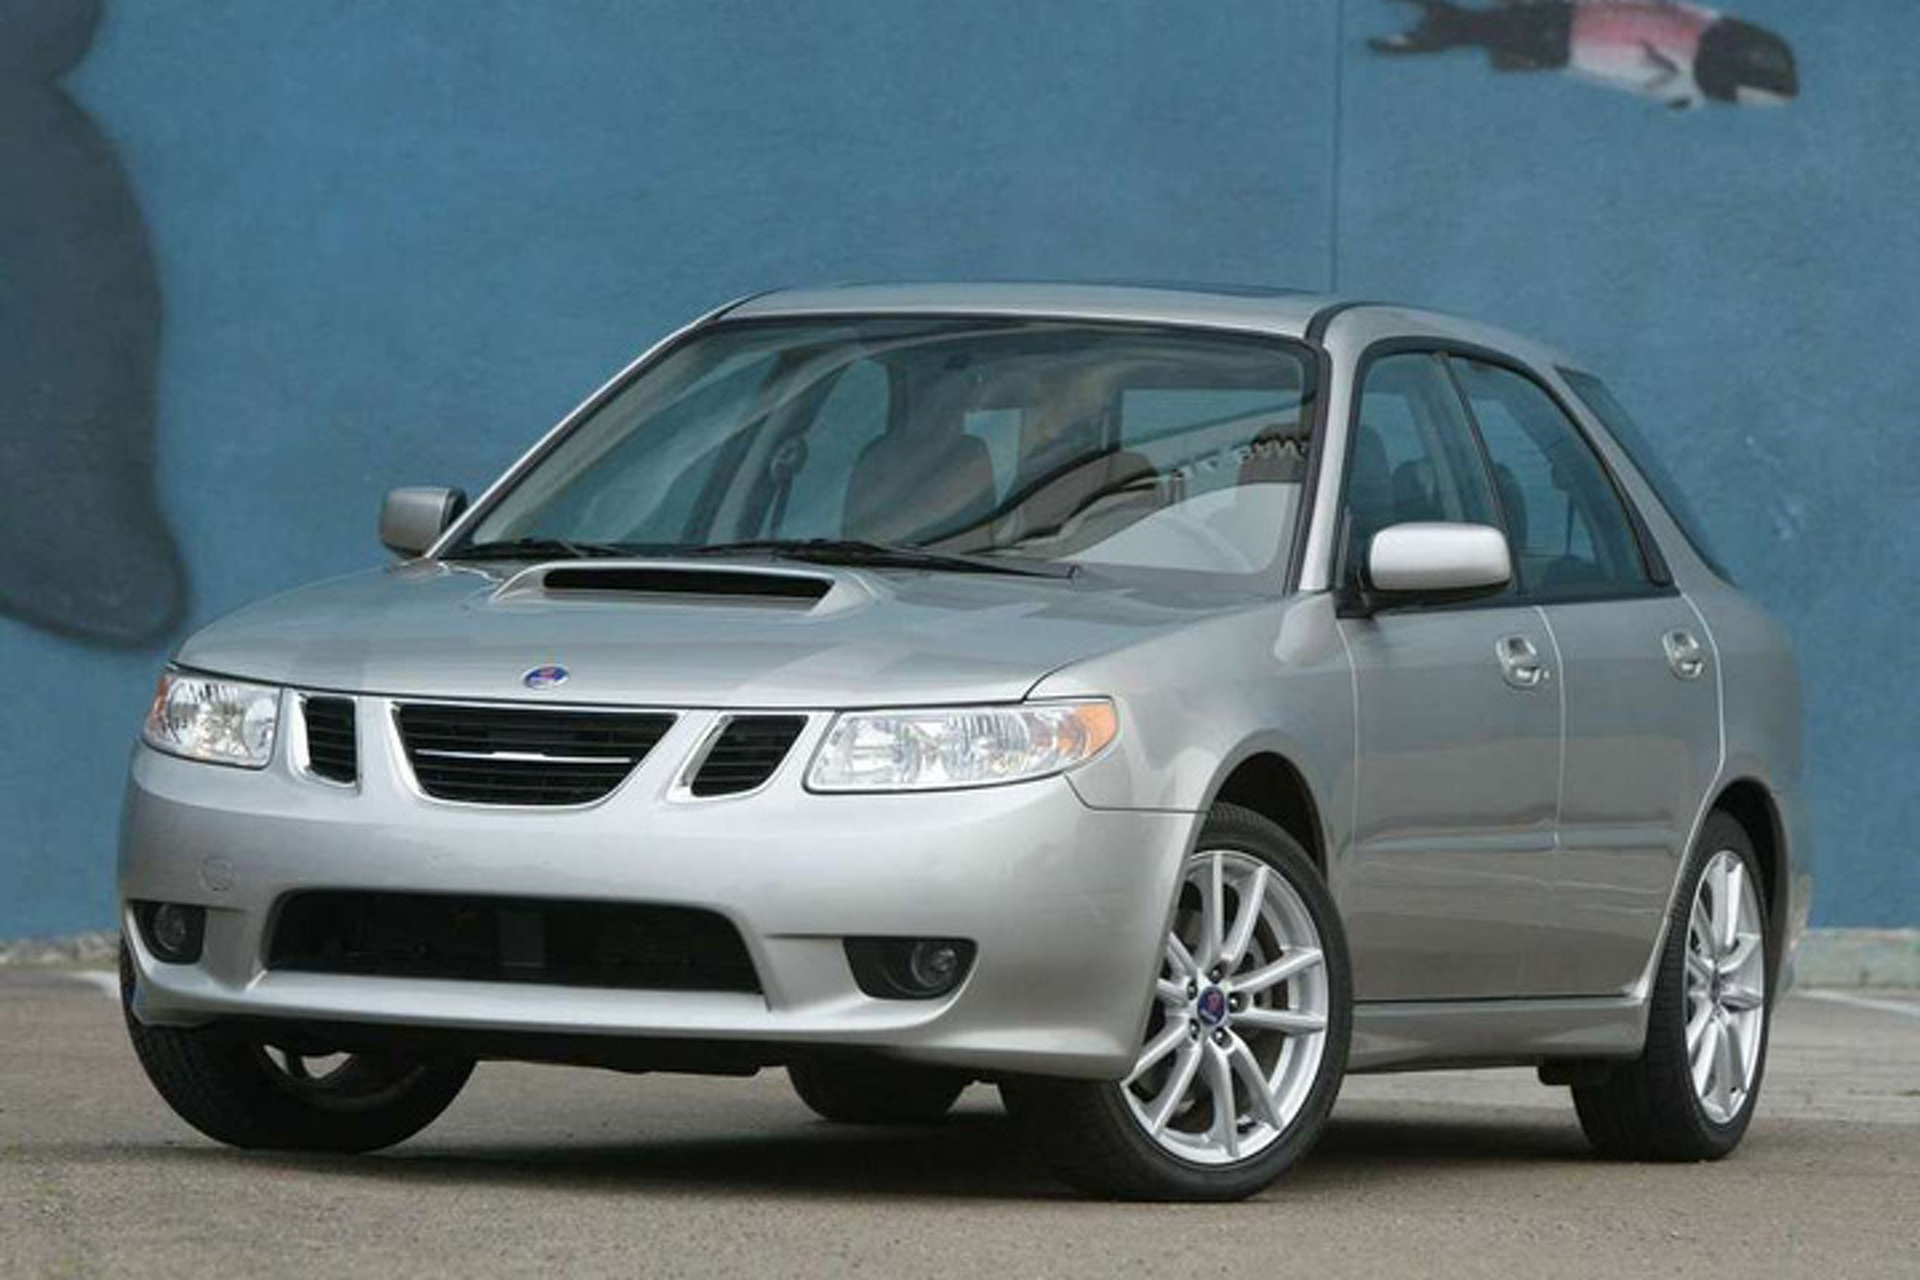 Rebadged Cars That You Didn't Realize Were Twins